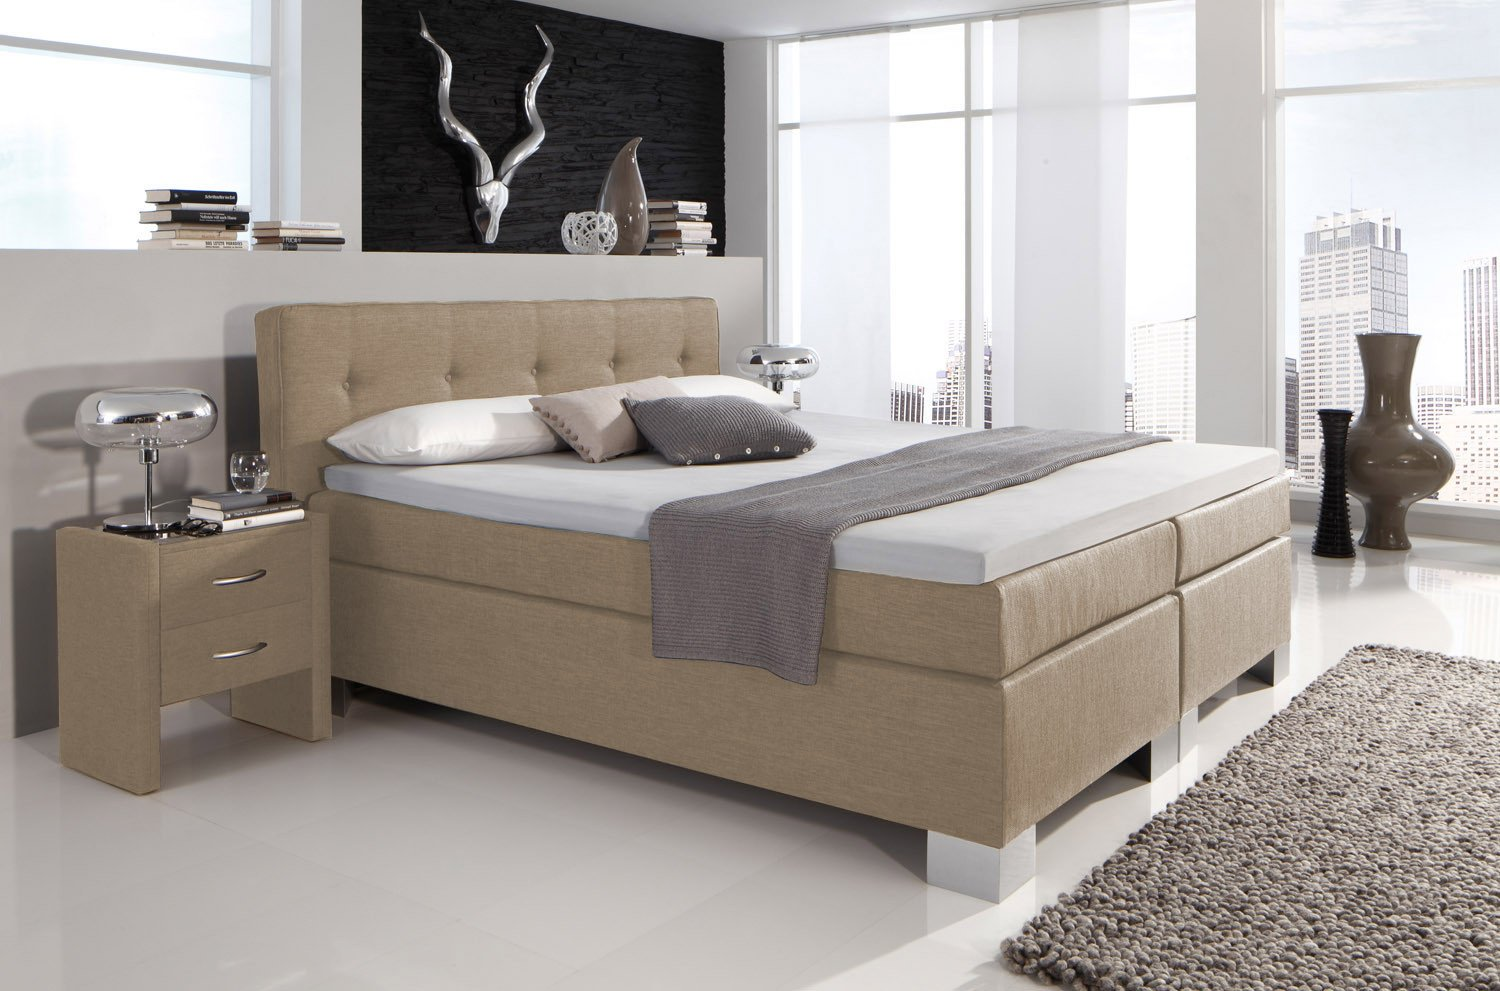 boxspringbett boston von hapo schlafm bel in beige m bel. Black Bedroom Furniture Sets. Home Design Ideas